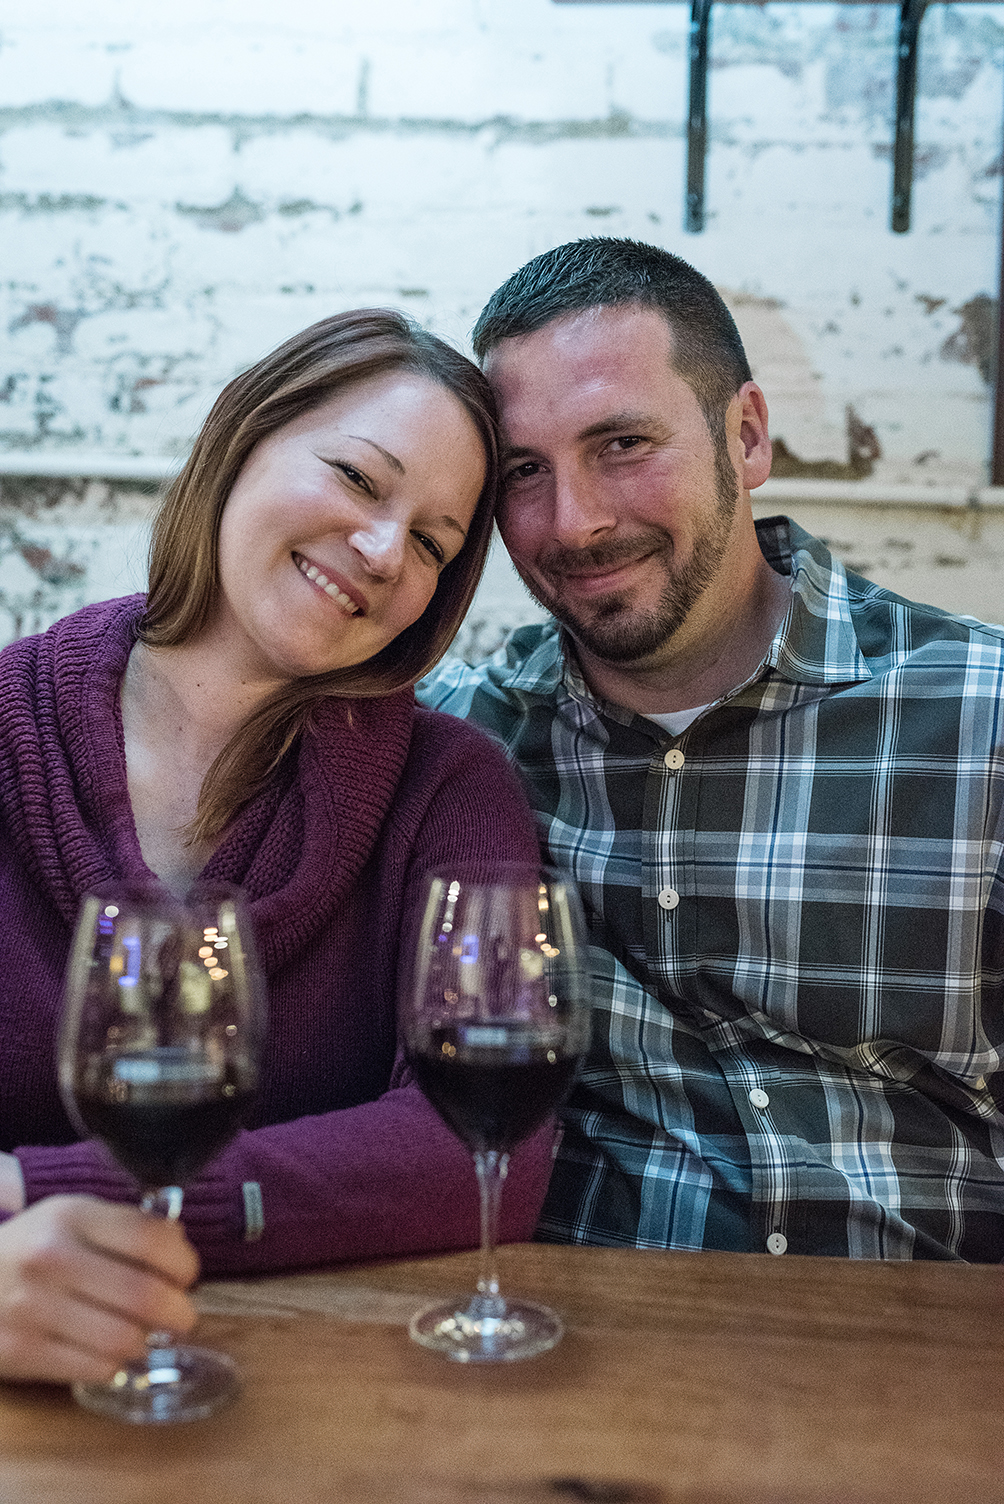 Winery Engagement Shoot in Cleveland Ohio